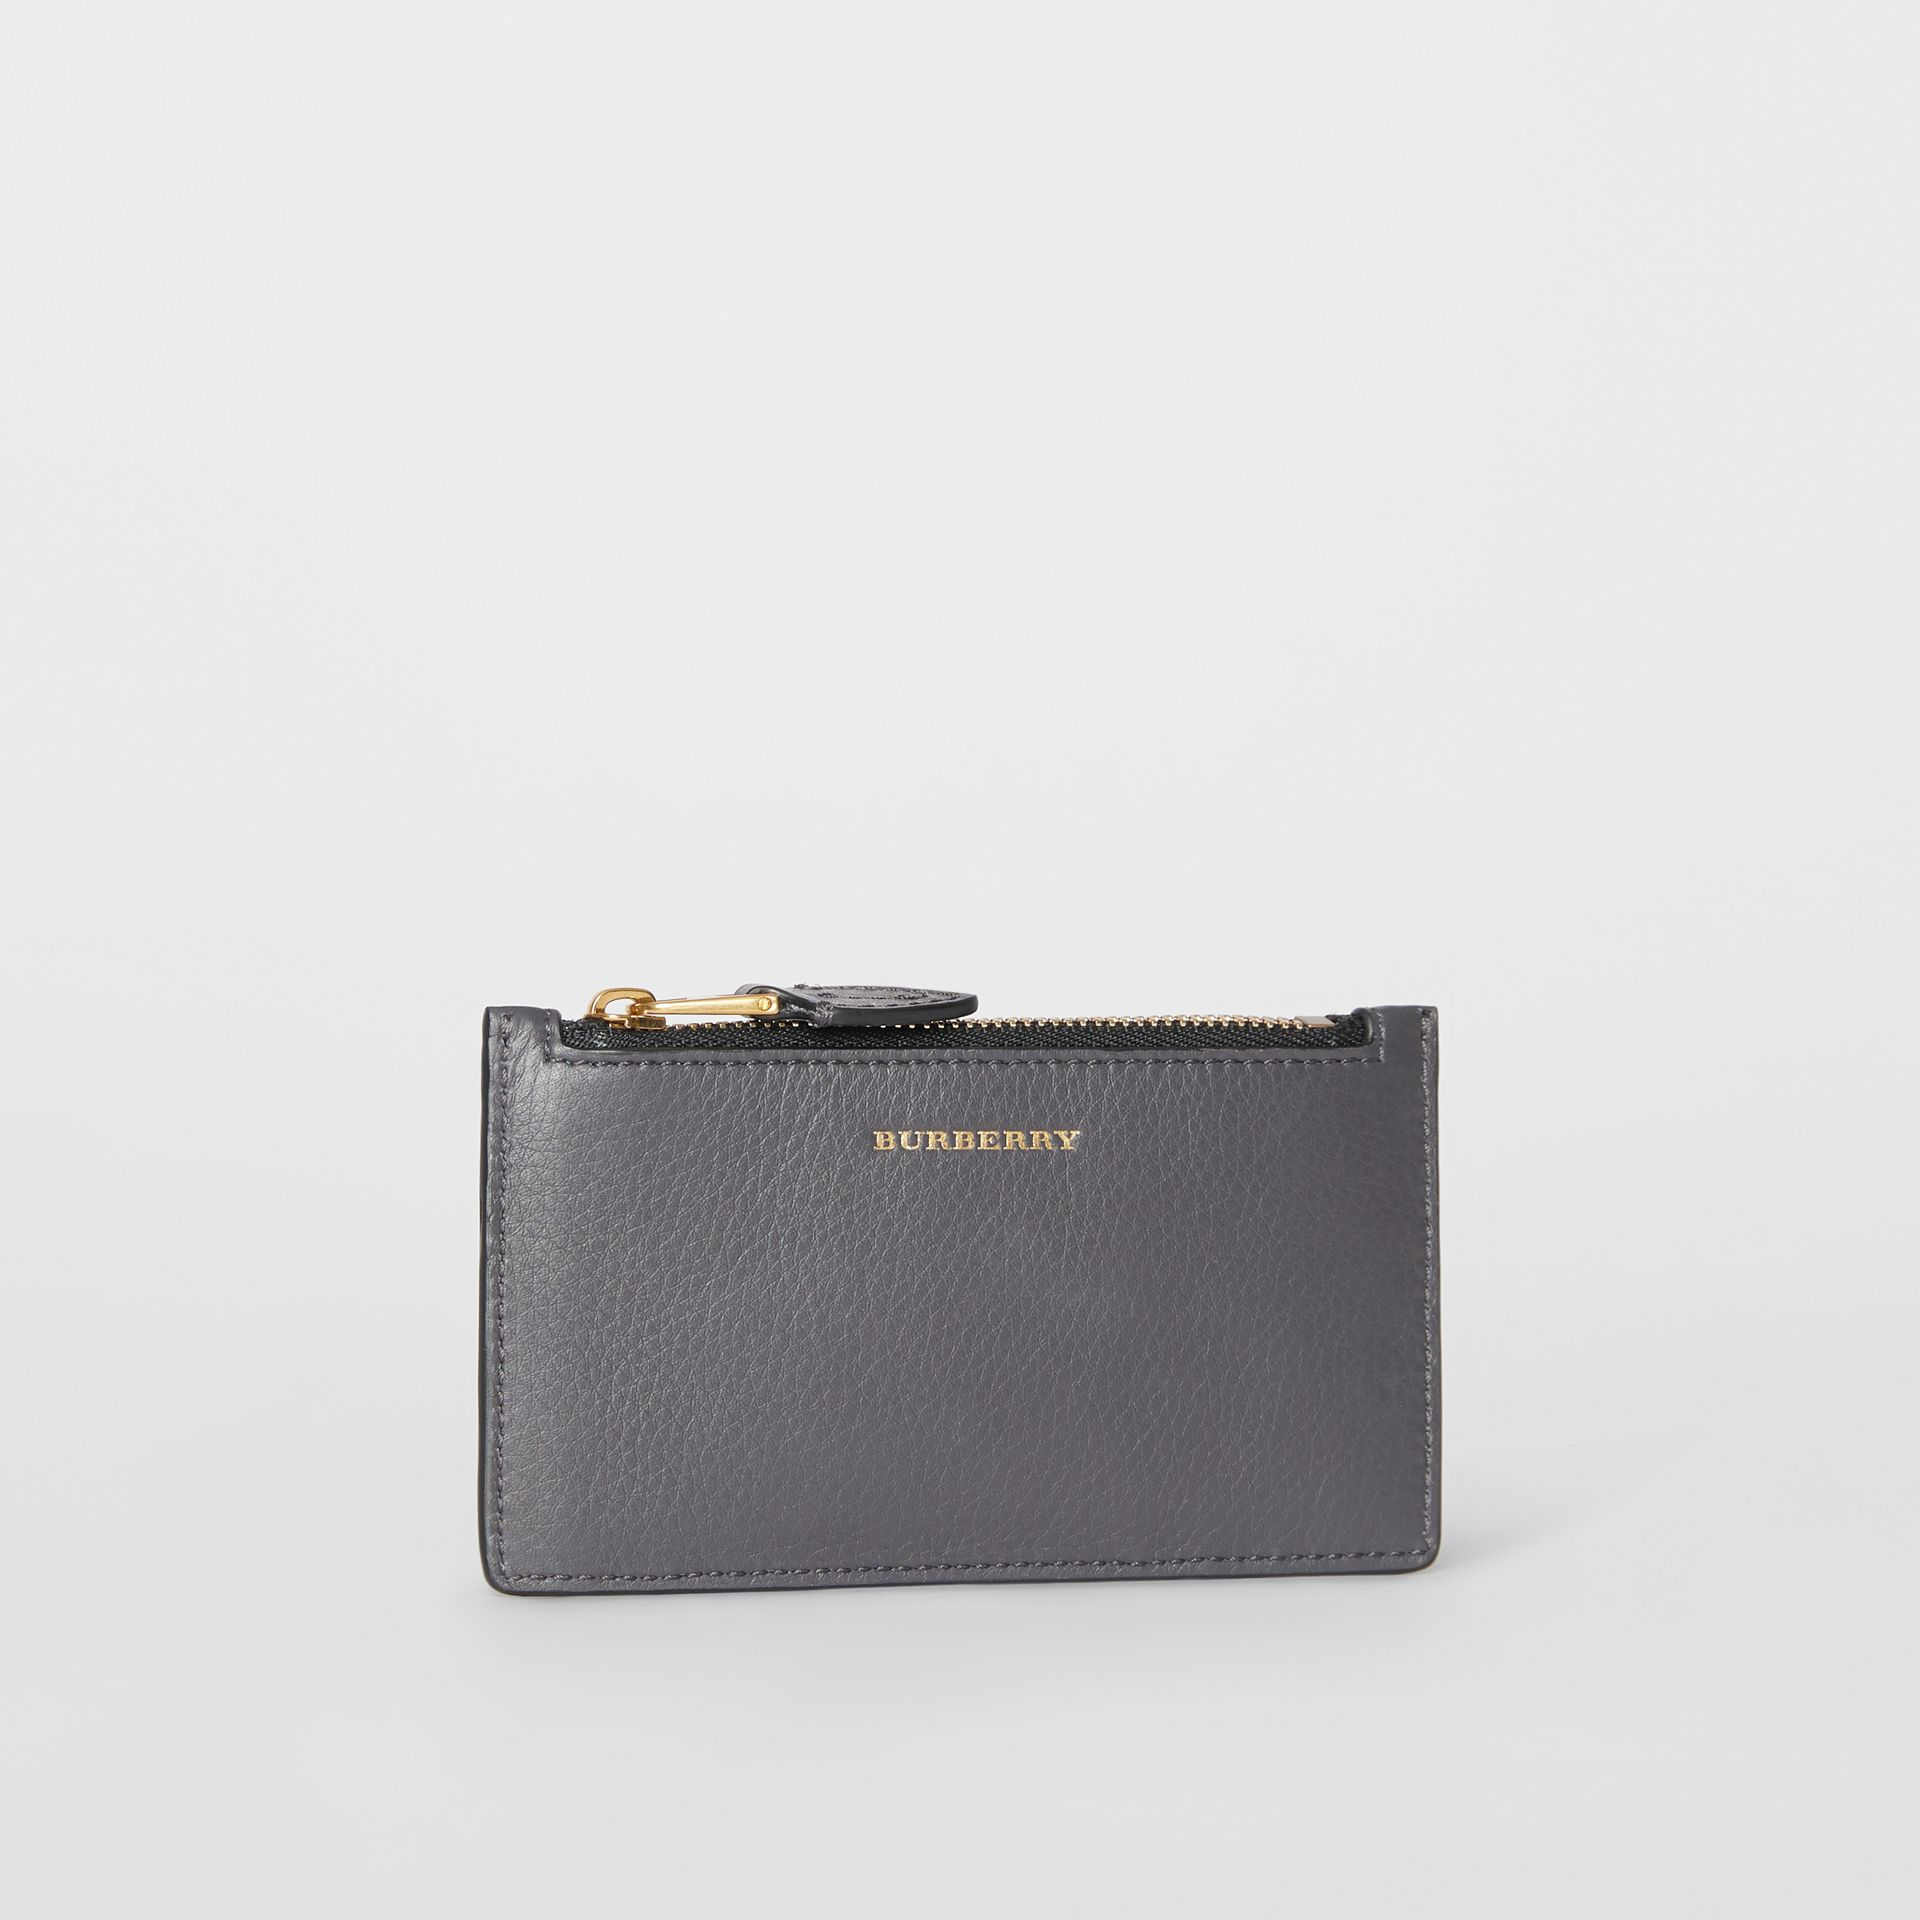 Two-tone Leather Card Case in Charcoal Grey - Women | Burberry United Kingdom - gallery image 4